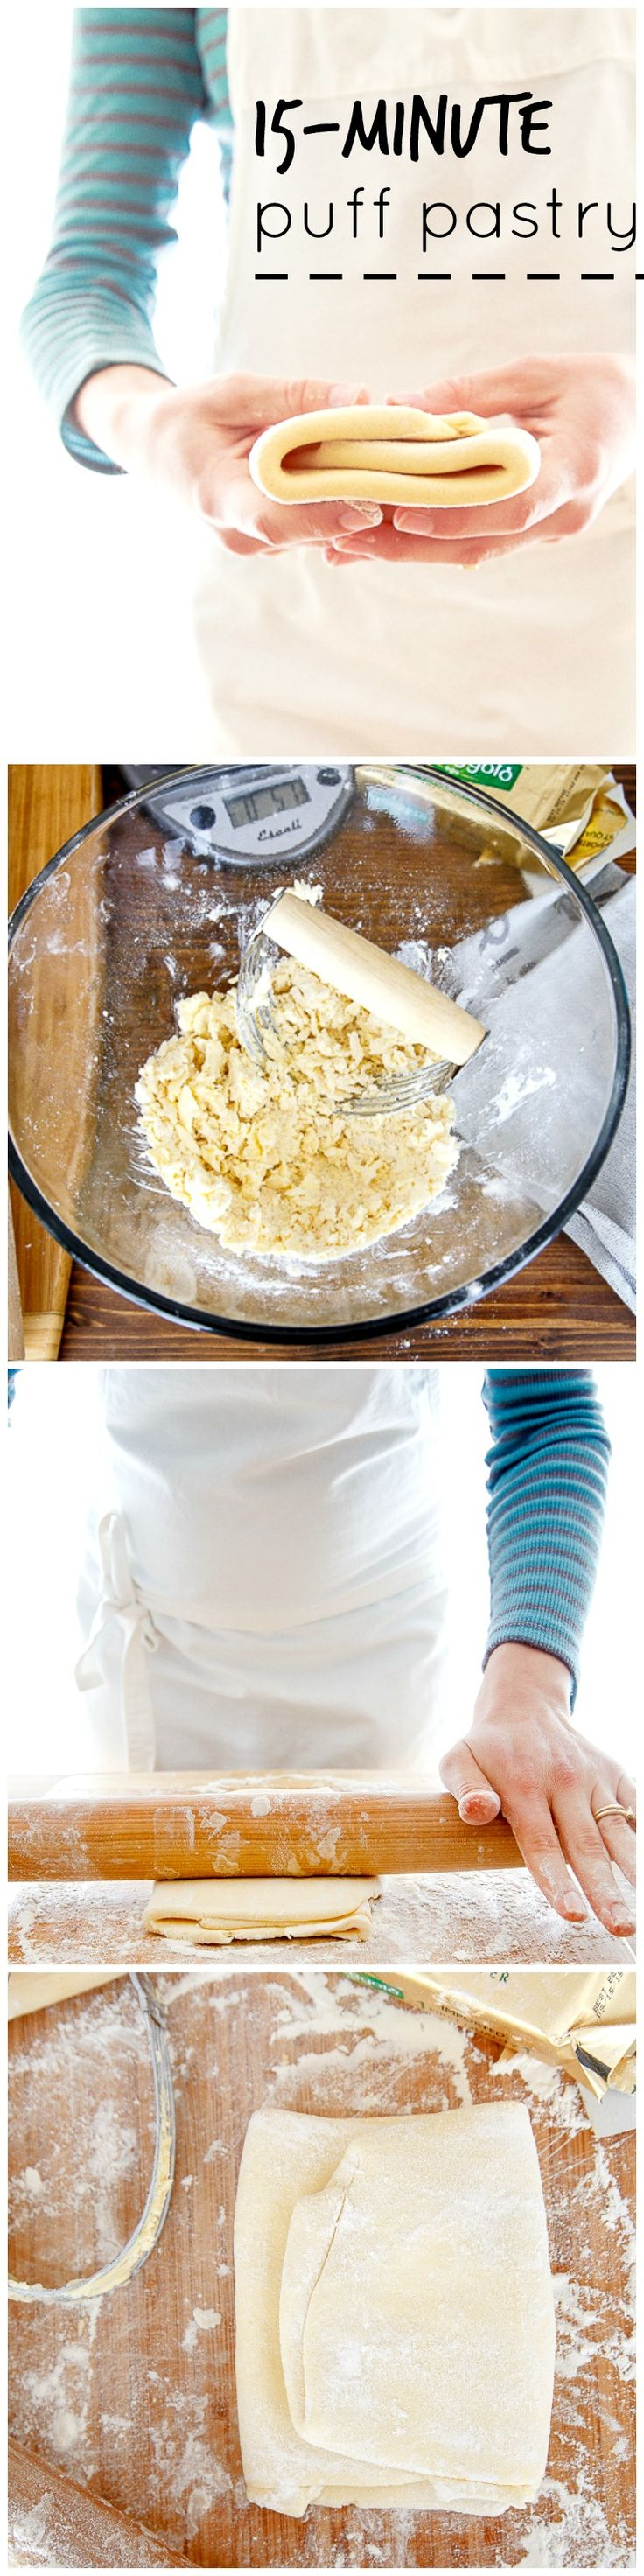 Quick and easy homemade puff pastry. Step by step photos.